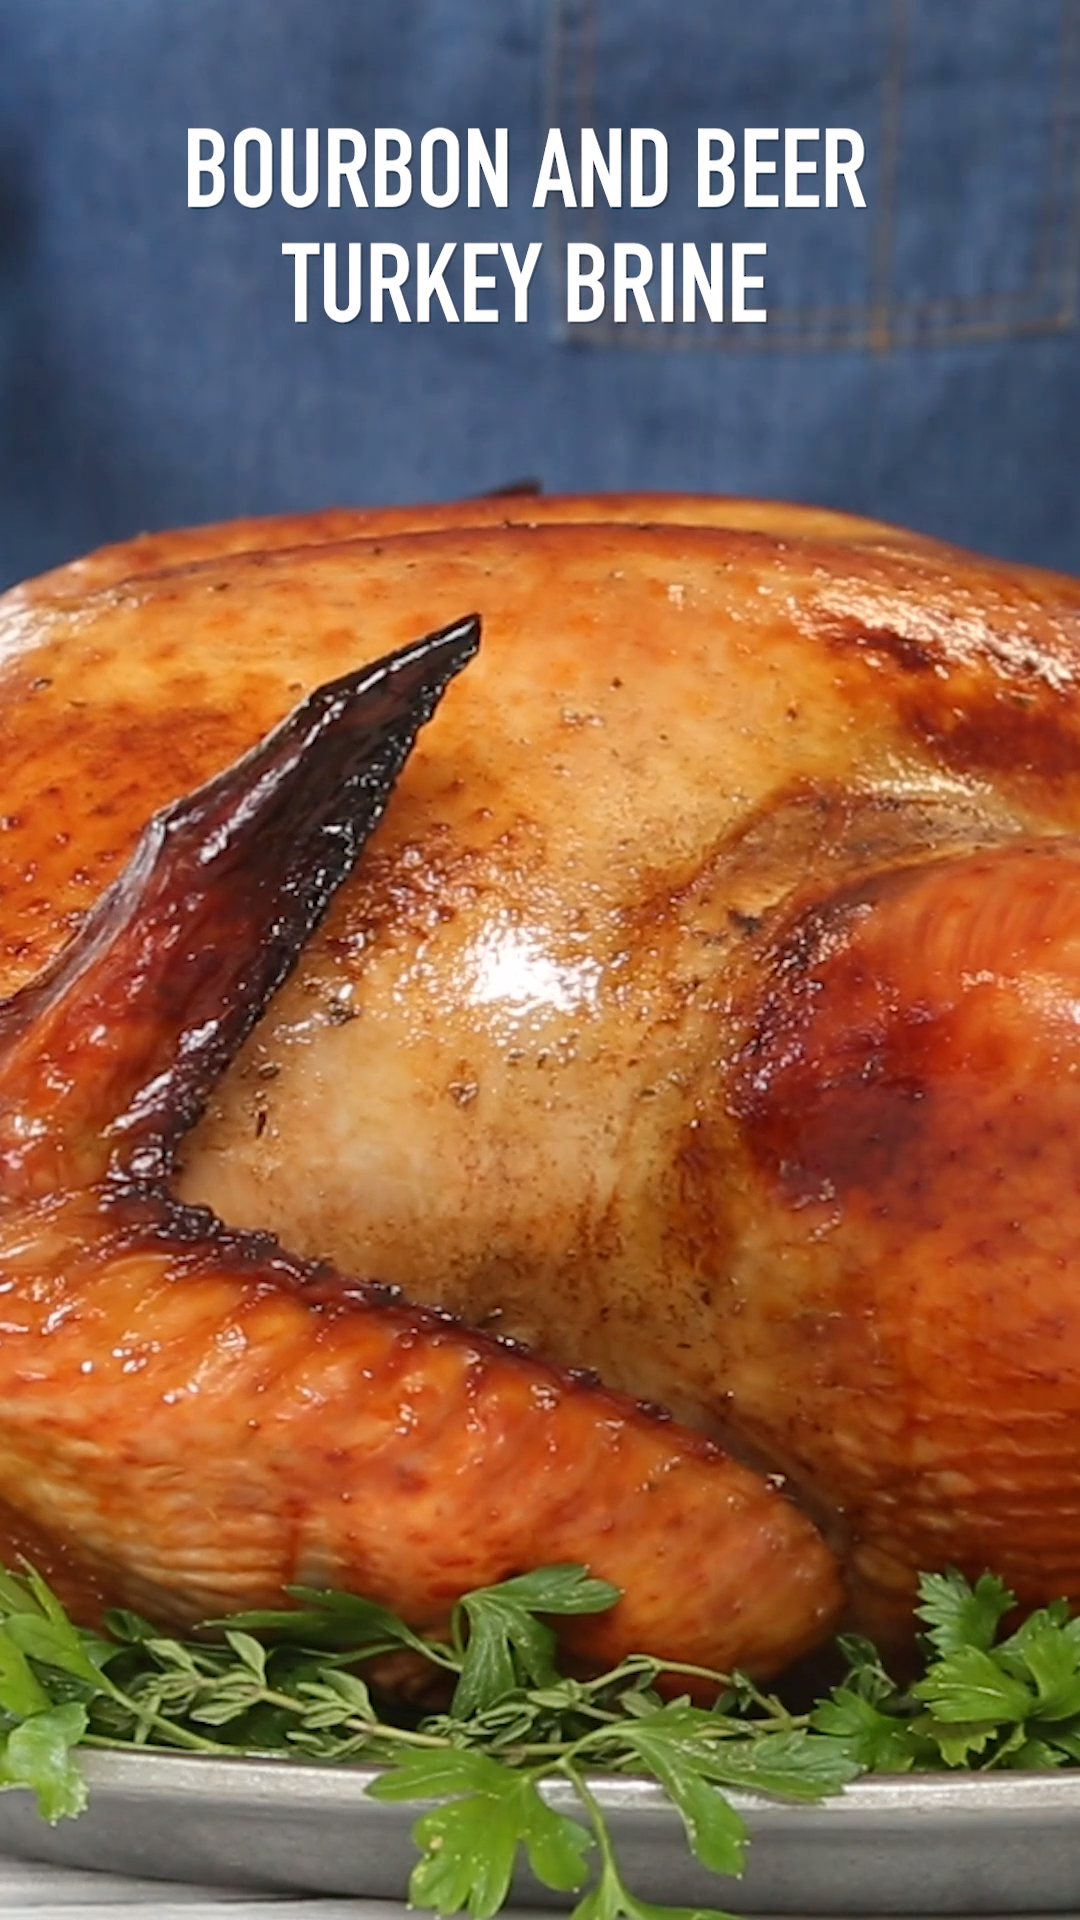 Bourbon and Beer Turkey Brine